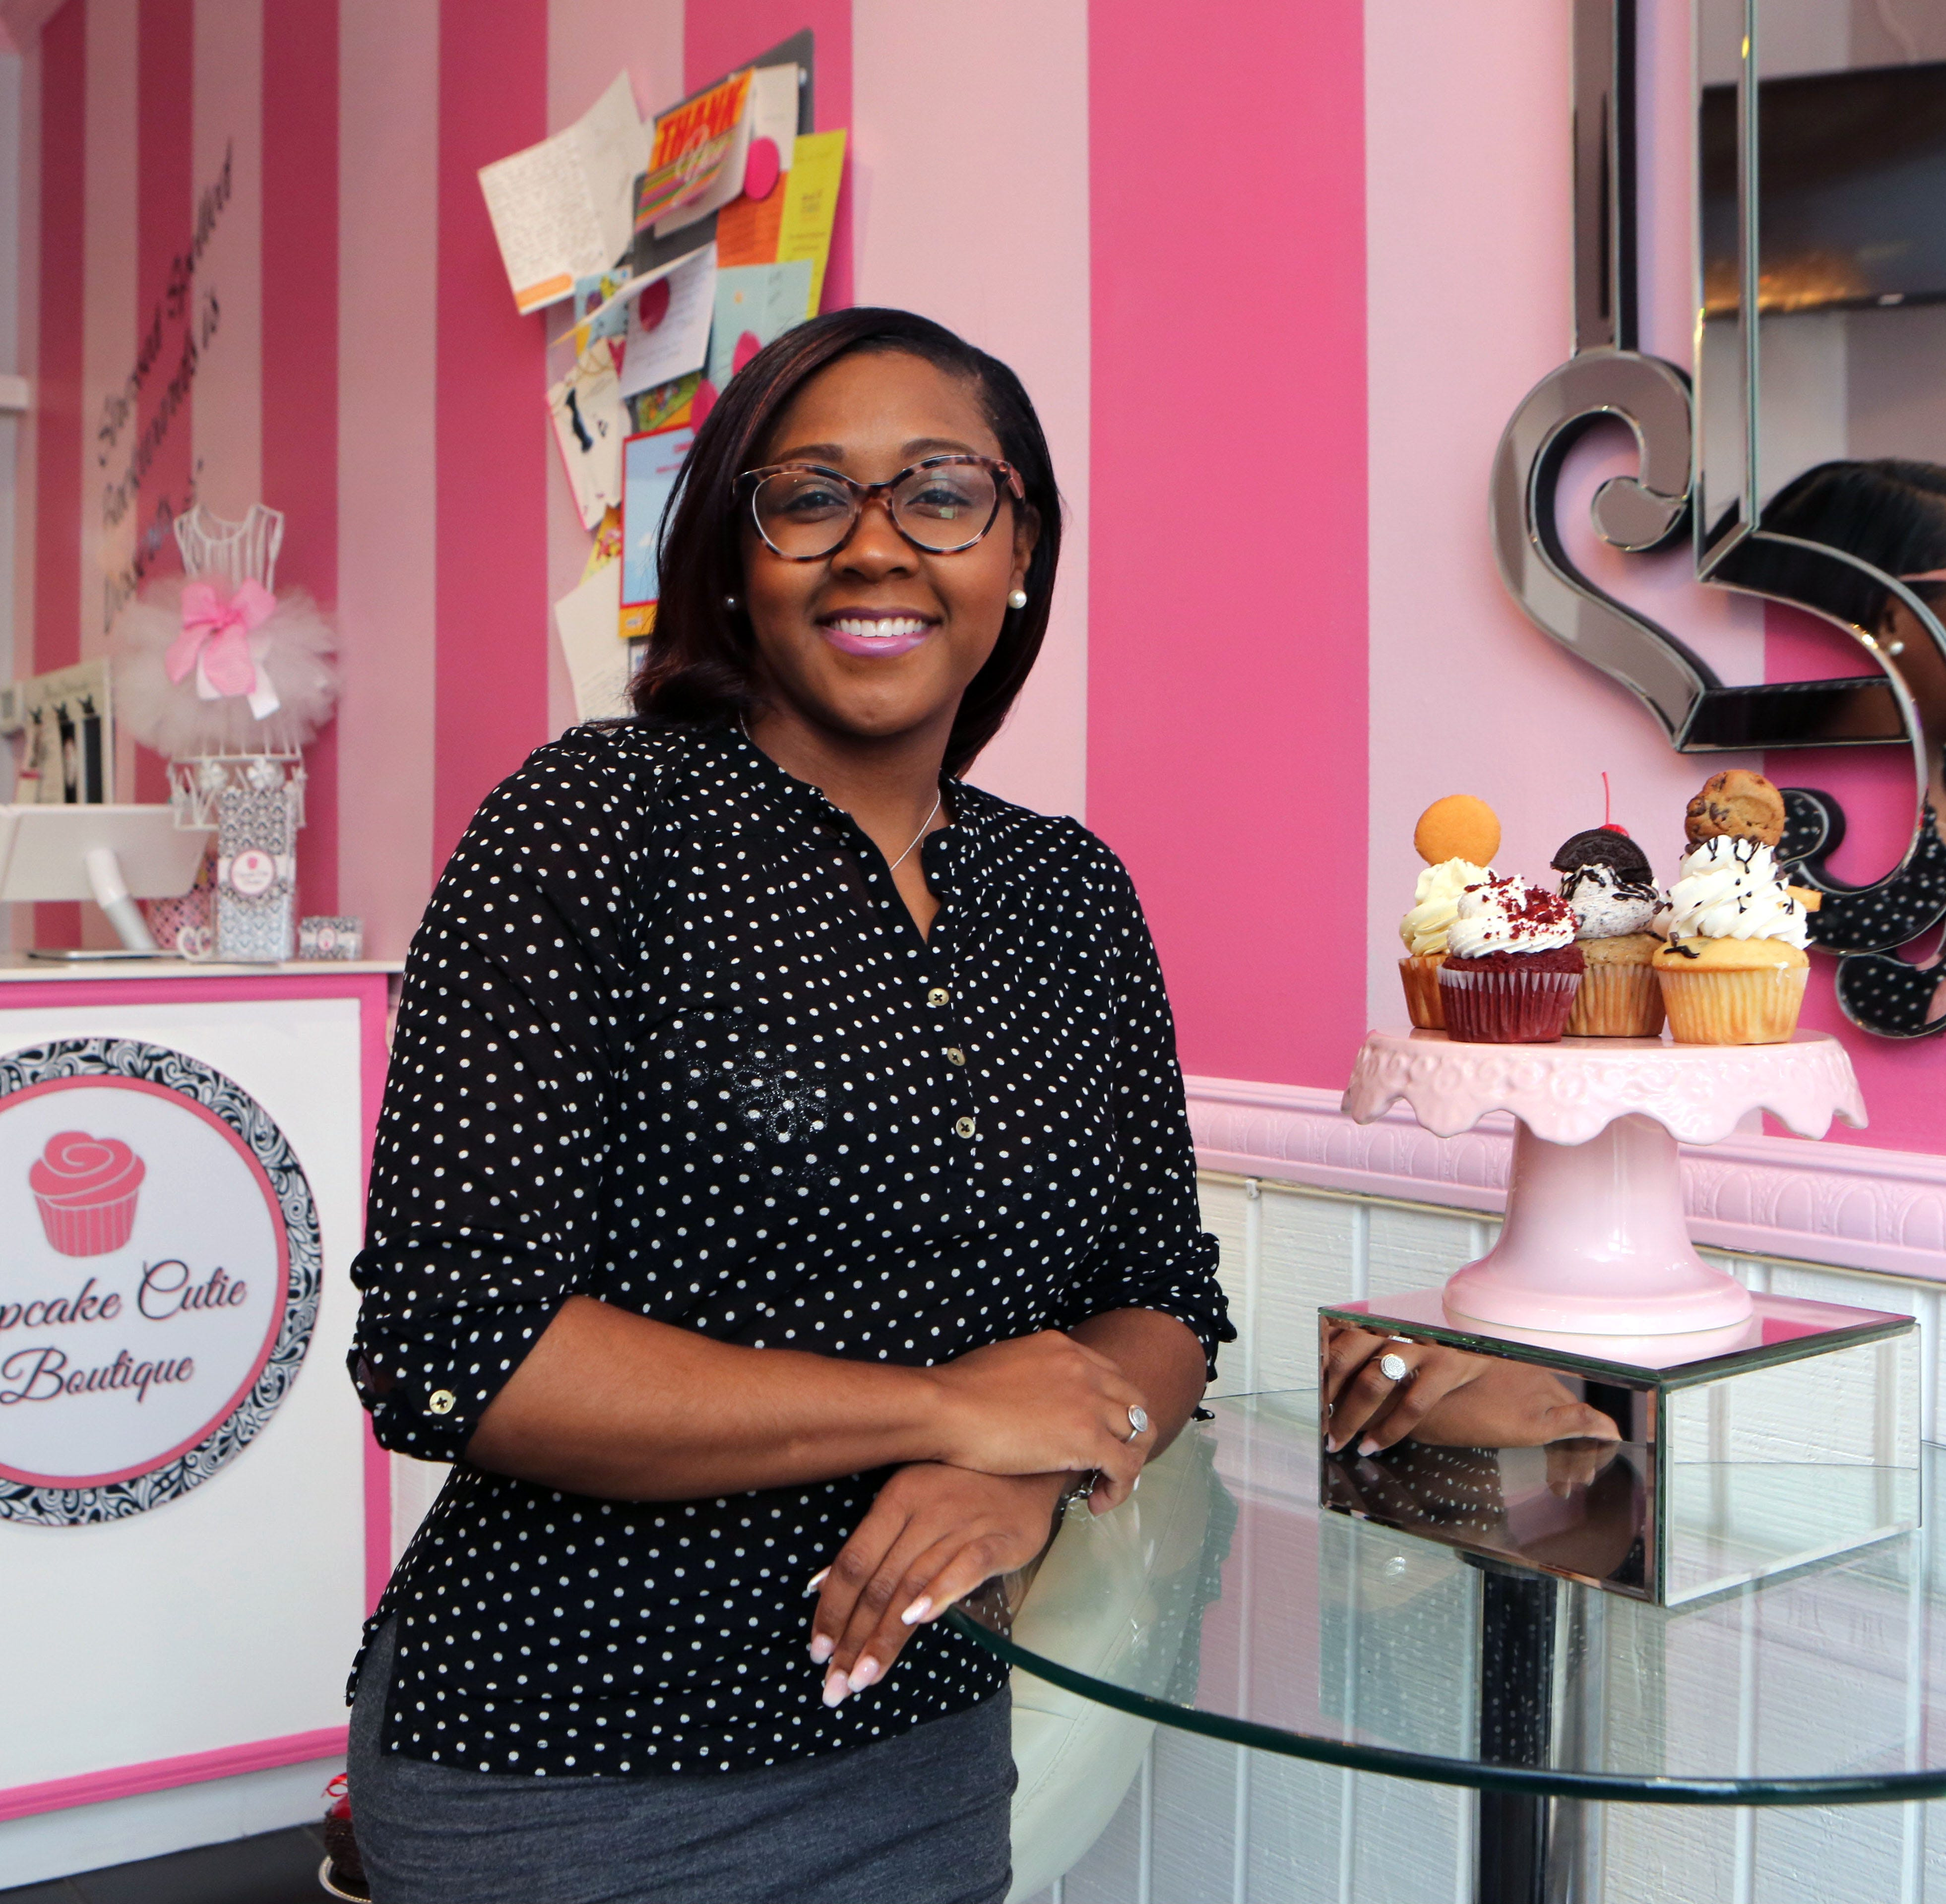 Cupcake shop owned by mayor critic's daughter allowed to reopen